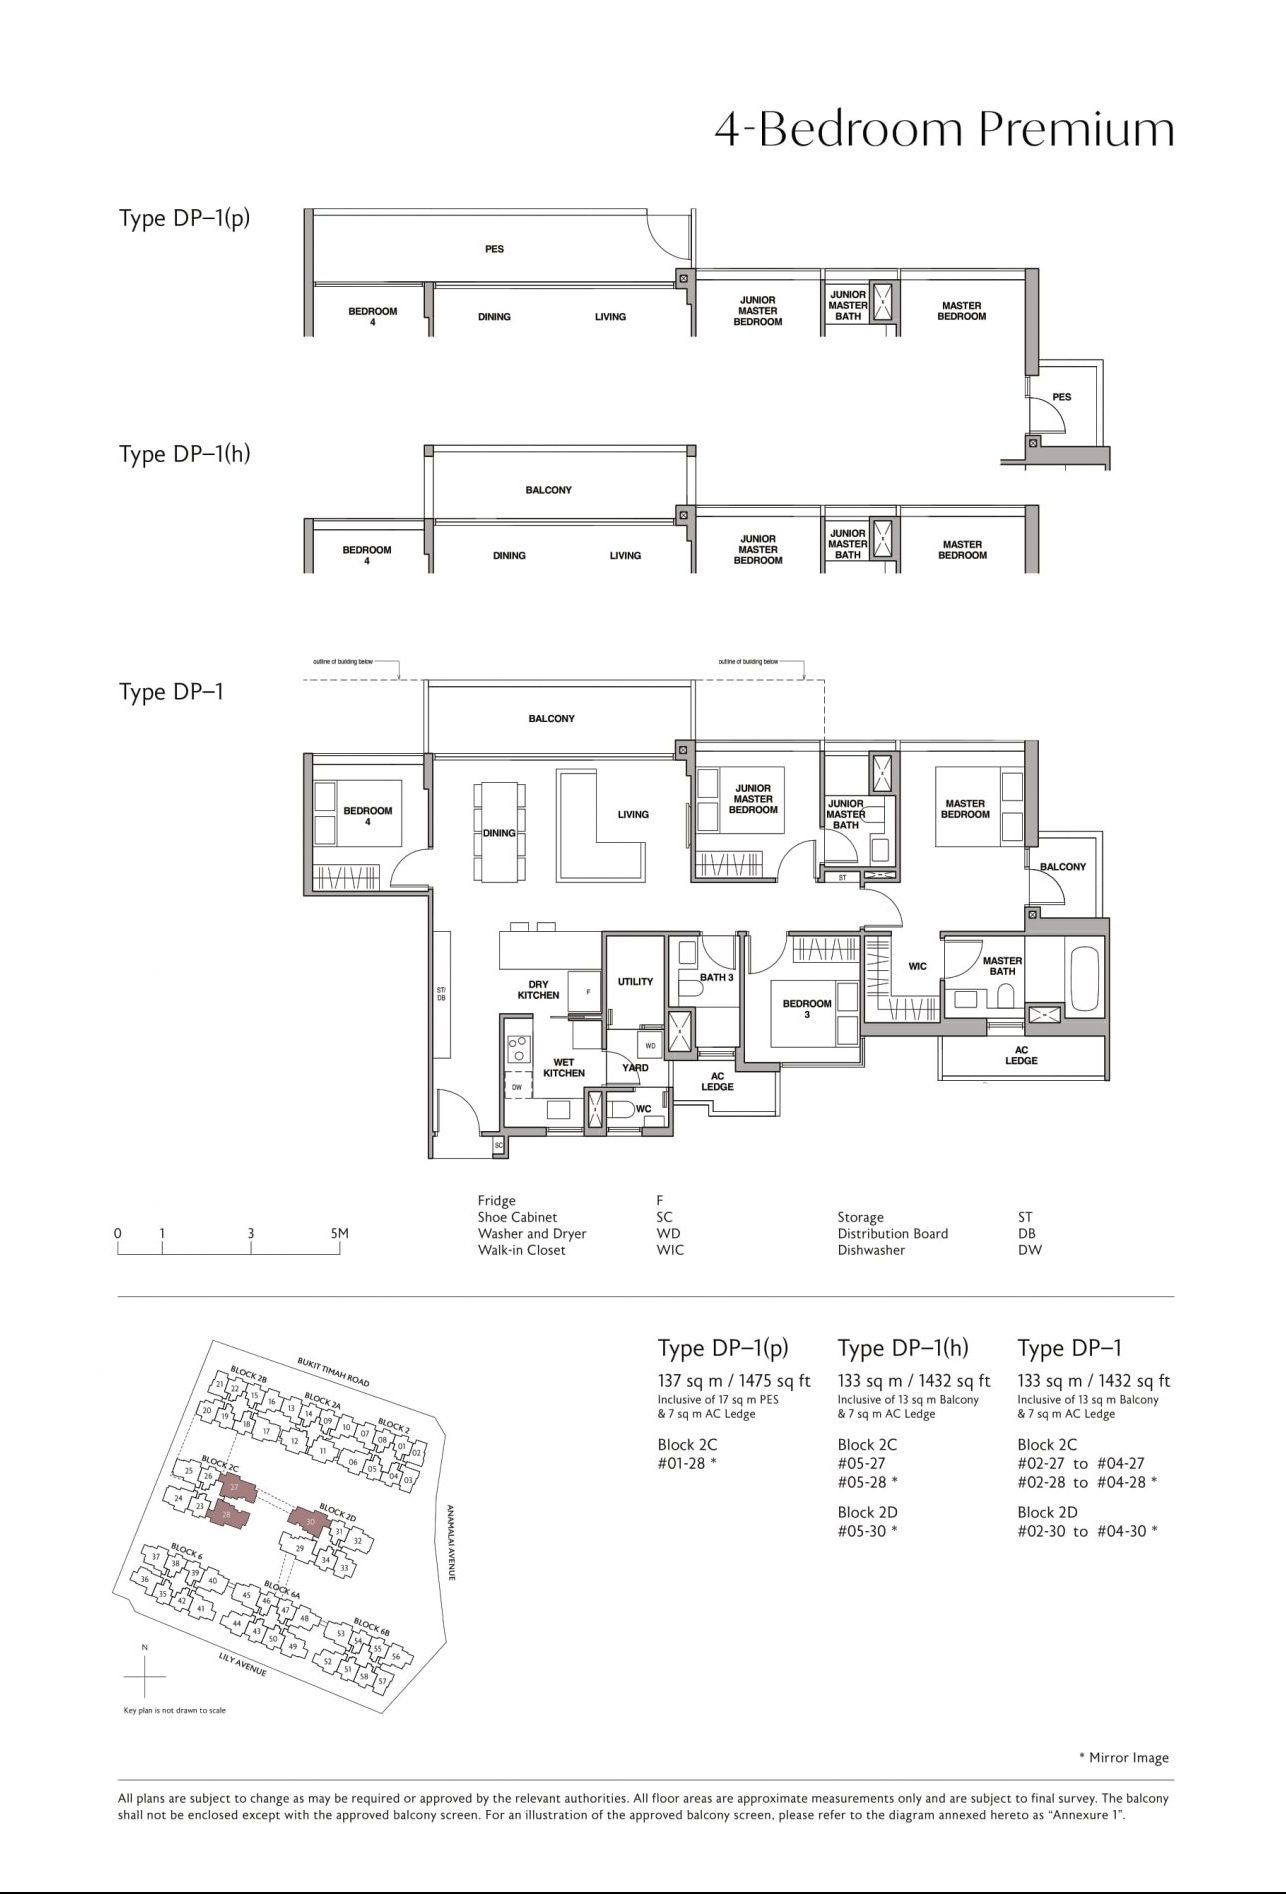 Royalgreen's four-bedroom premium & four-bedroom + study types